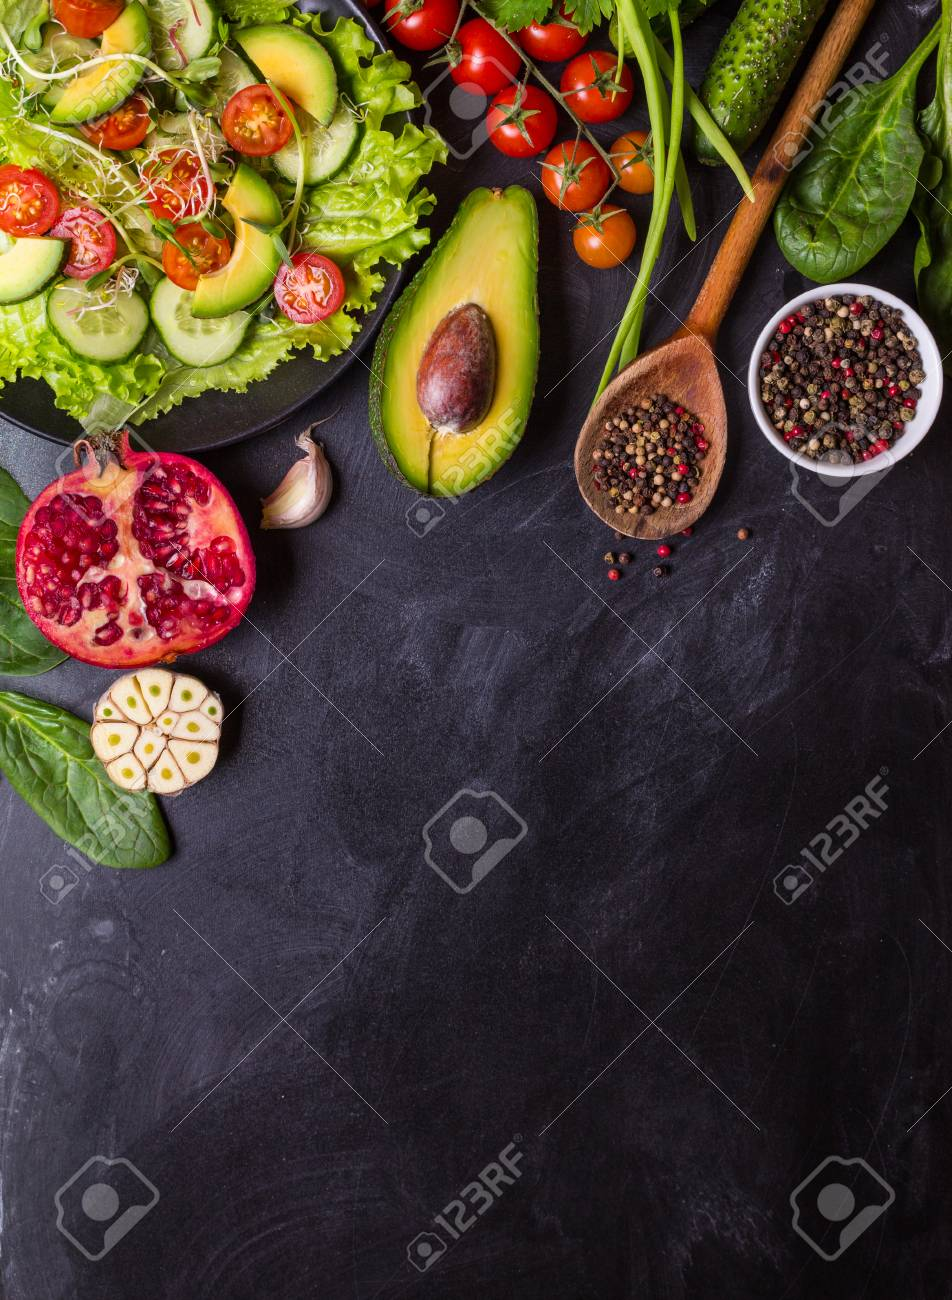 Ingredients for making salad on rustic black chalk board background. Vegetable salad in bowl, avocado, tomato, cucumber, spinach. Healthy, clean eating concept. Vegan or gluten free diet. Copy space - 71416943